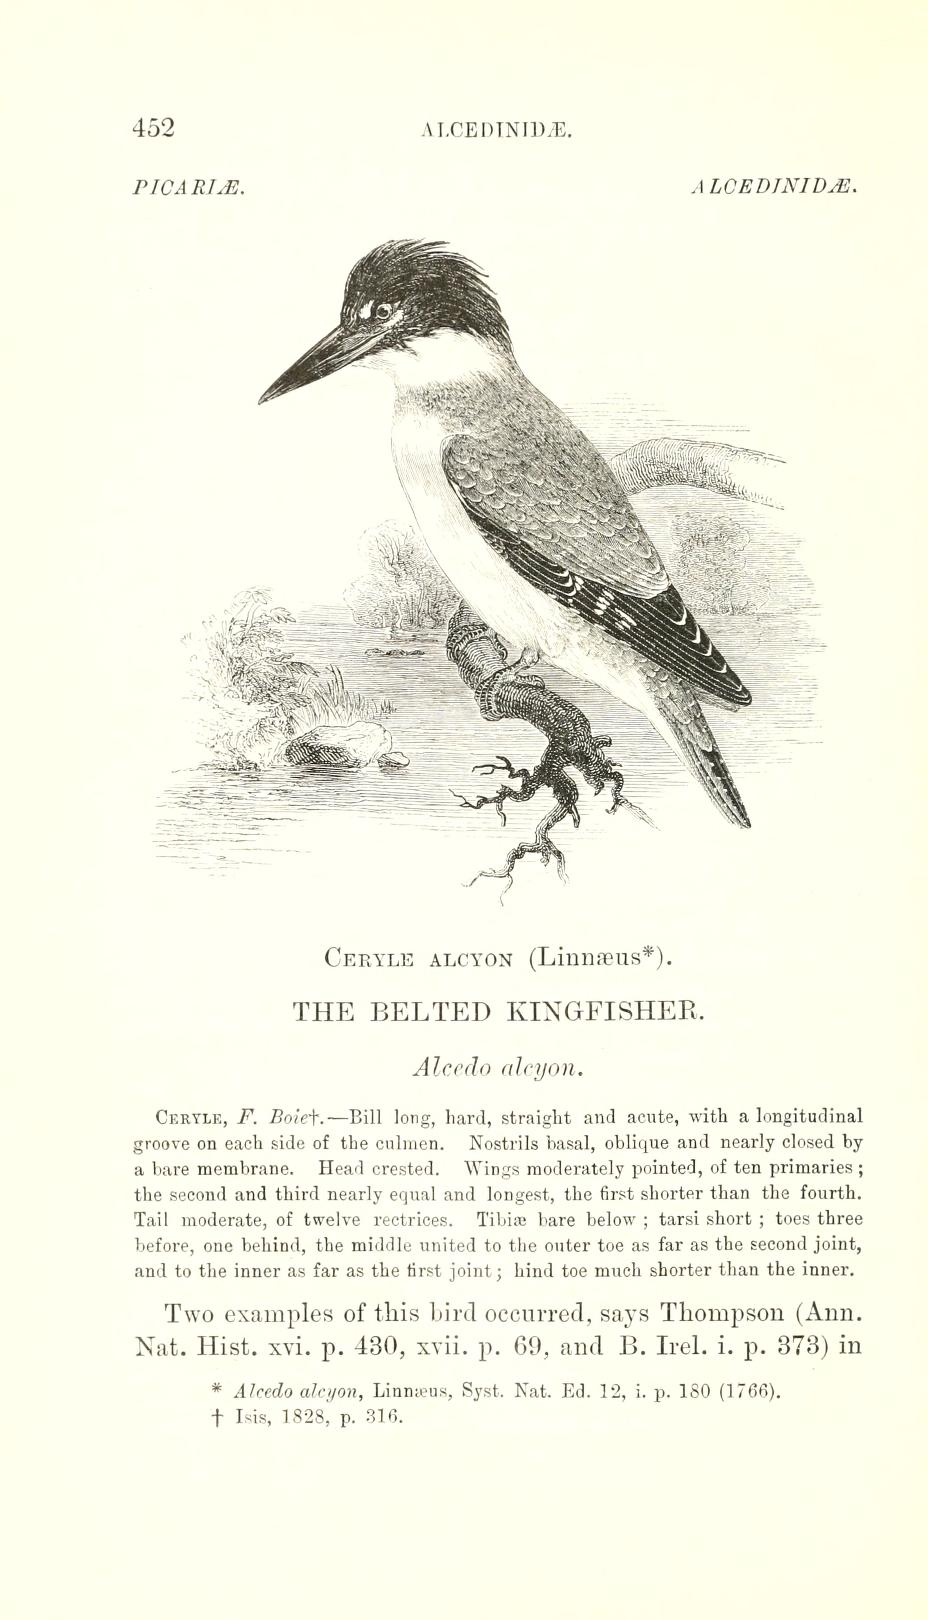 page image including text and a black and white illustration of a male belted kingfisher.